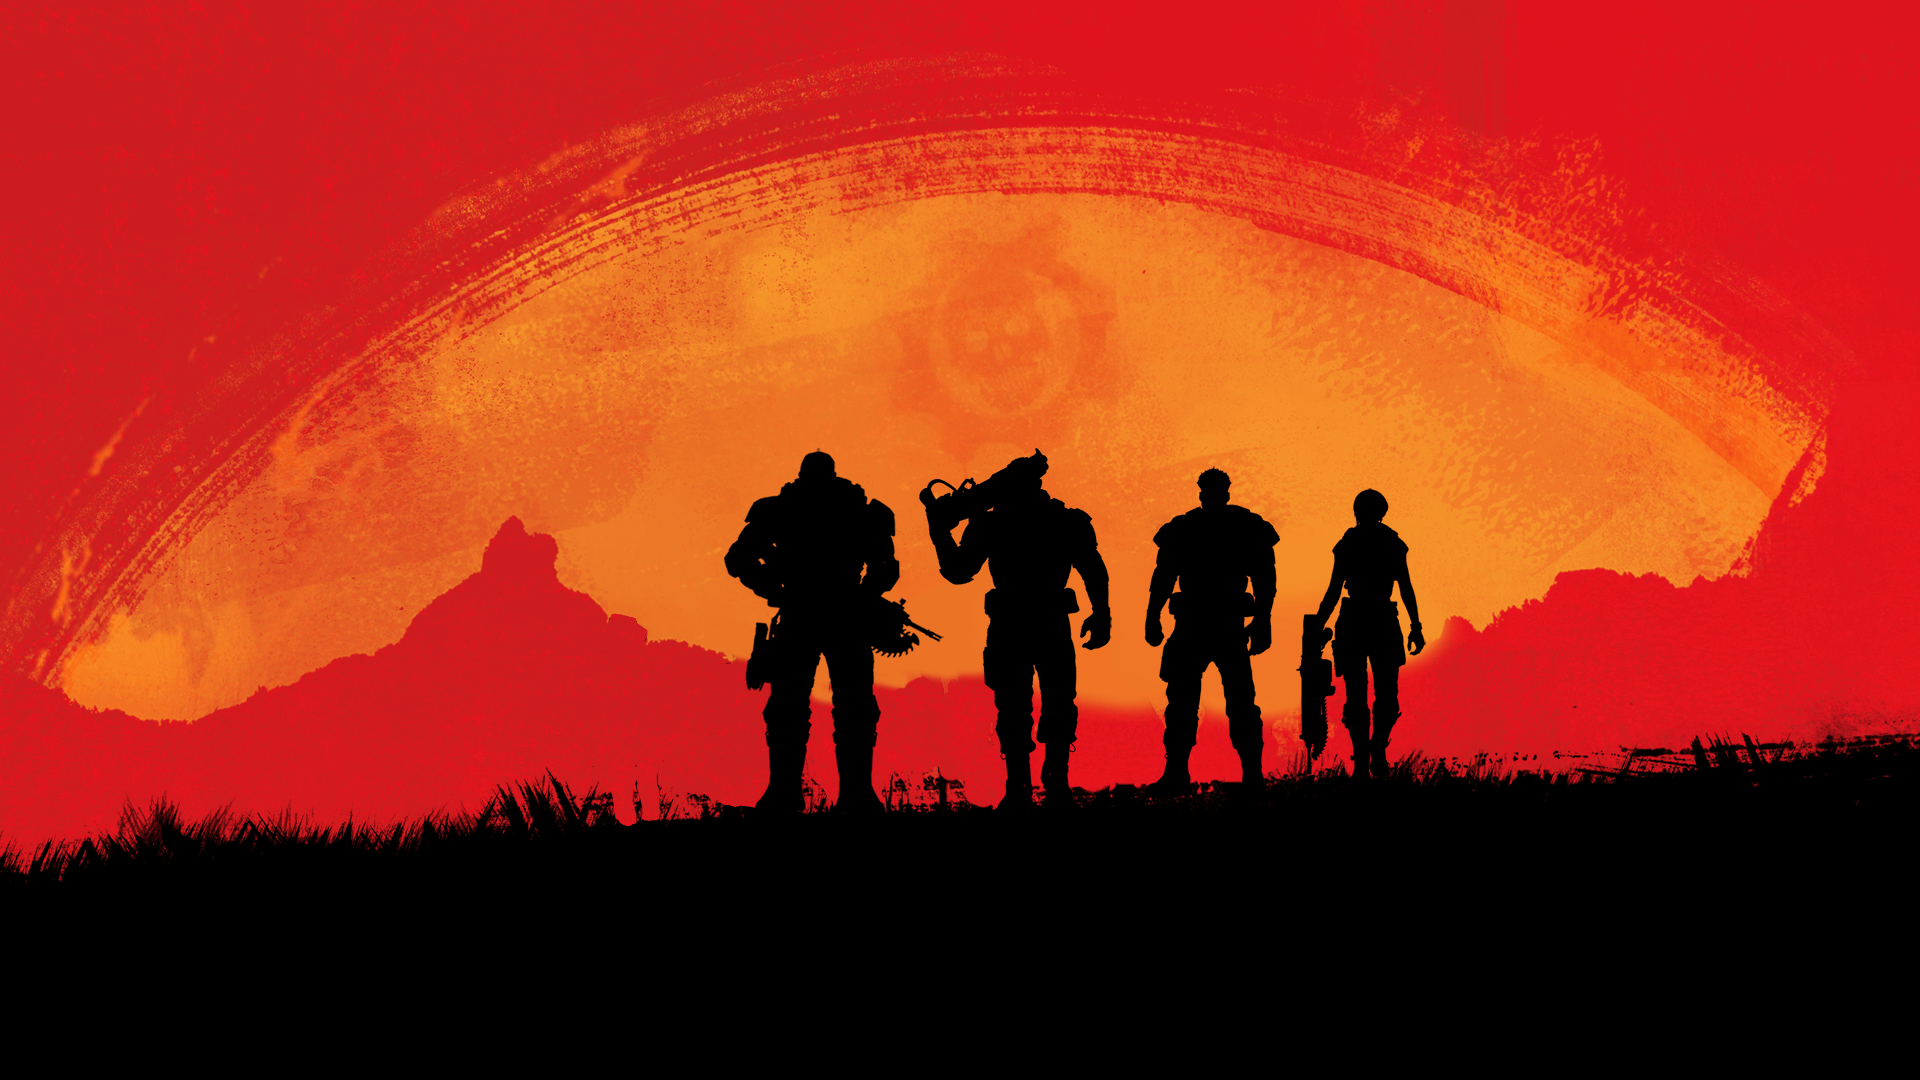 Red Dead Redemption 2 Wallpapers Top Free Red Dead Redemption 2